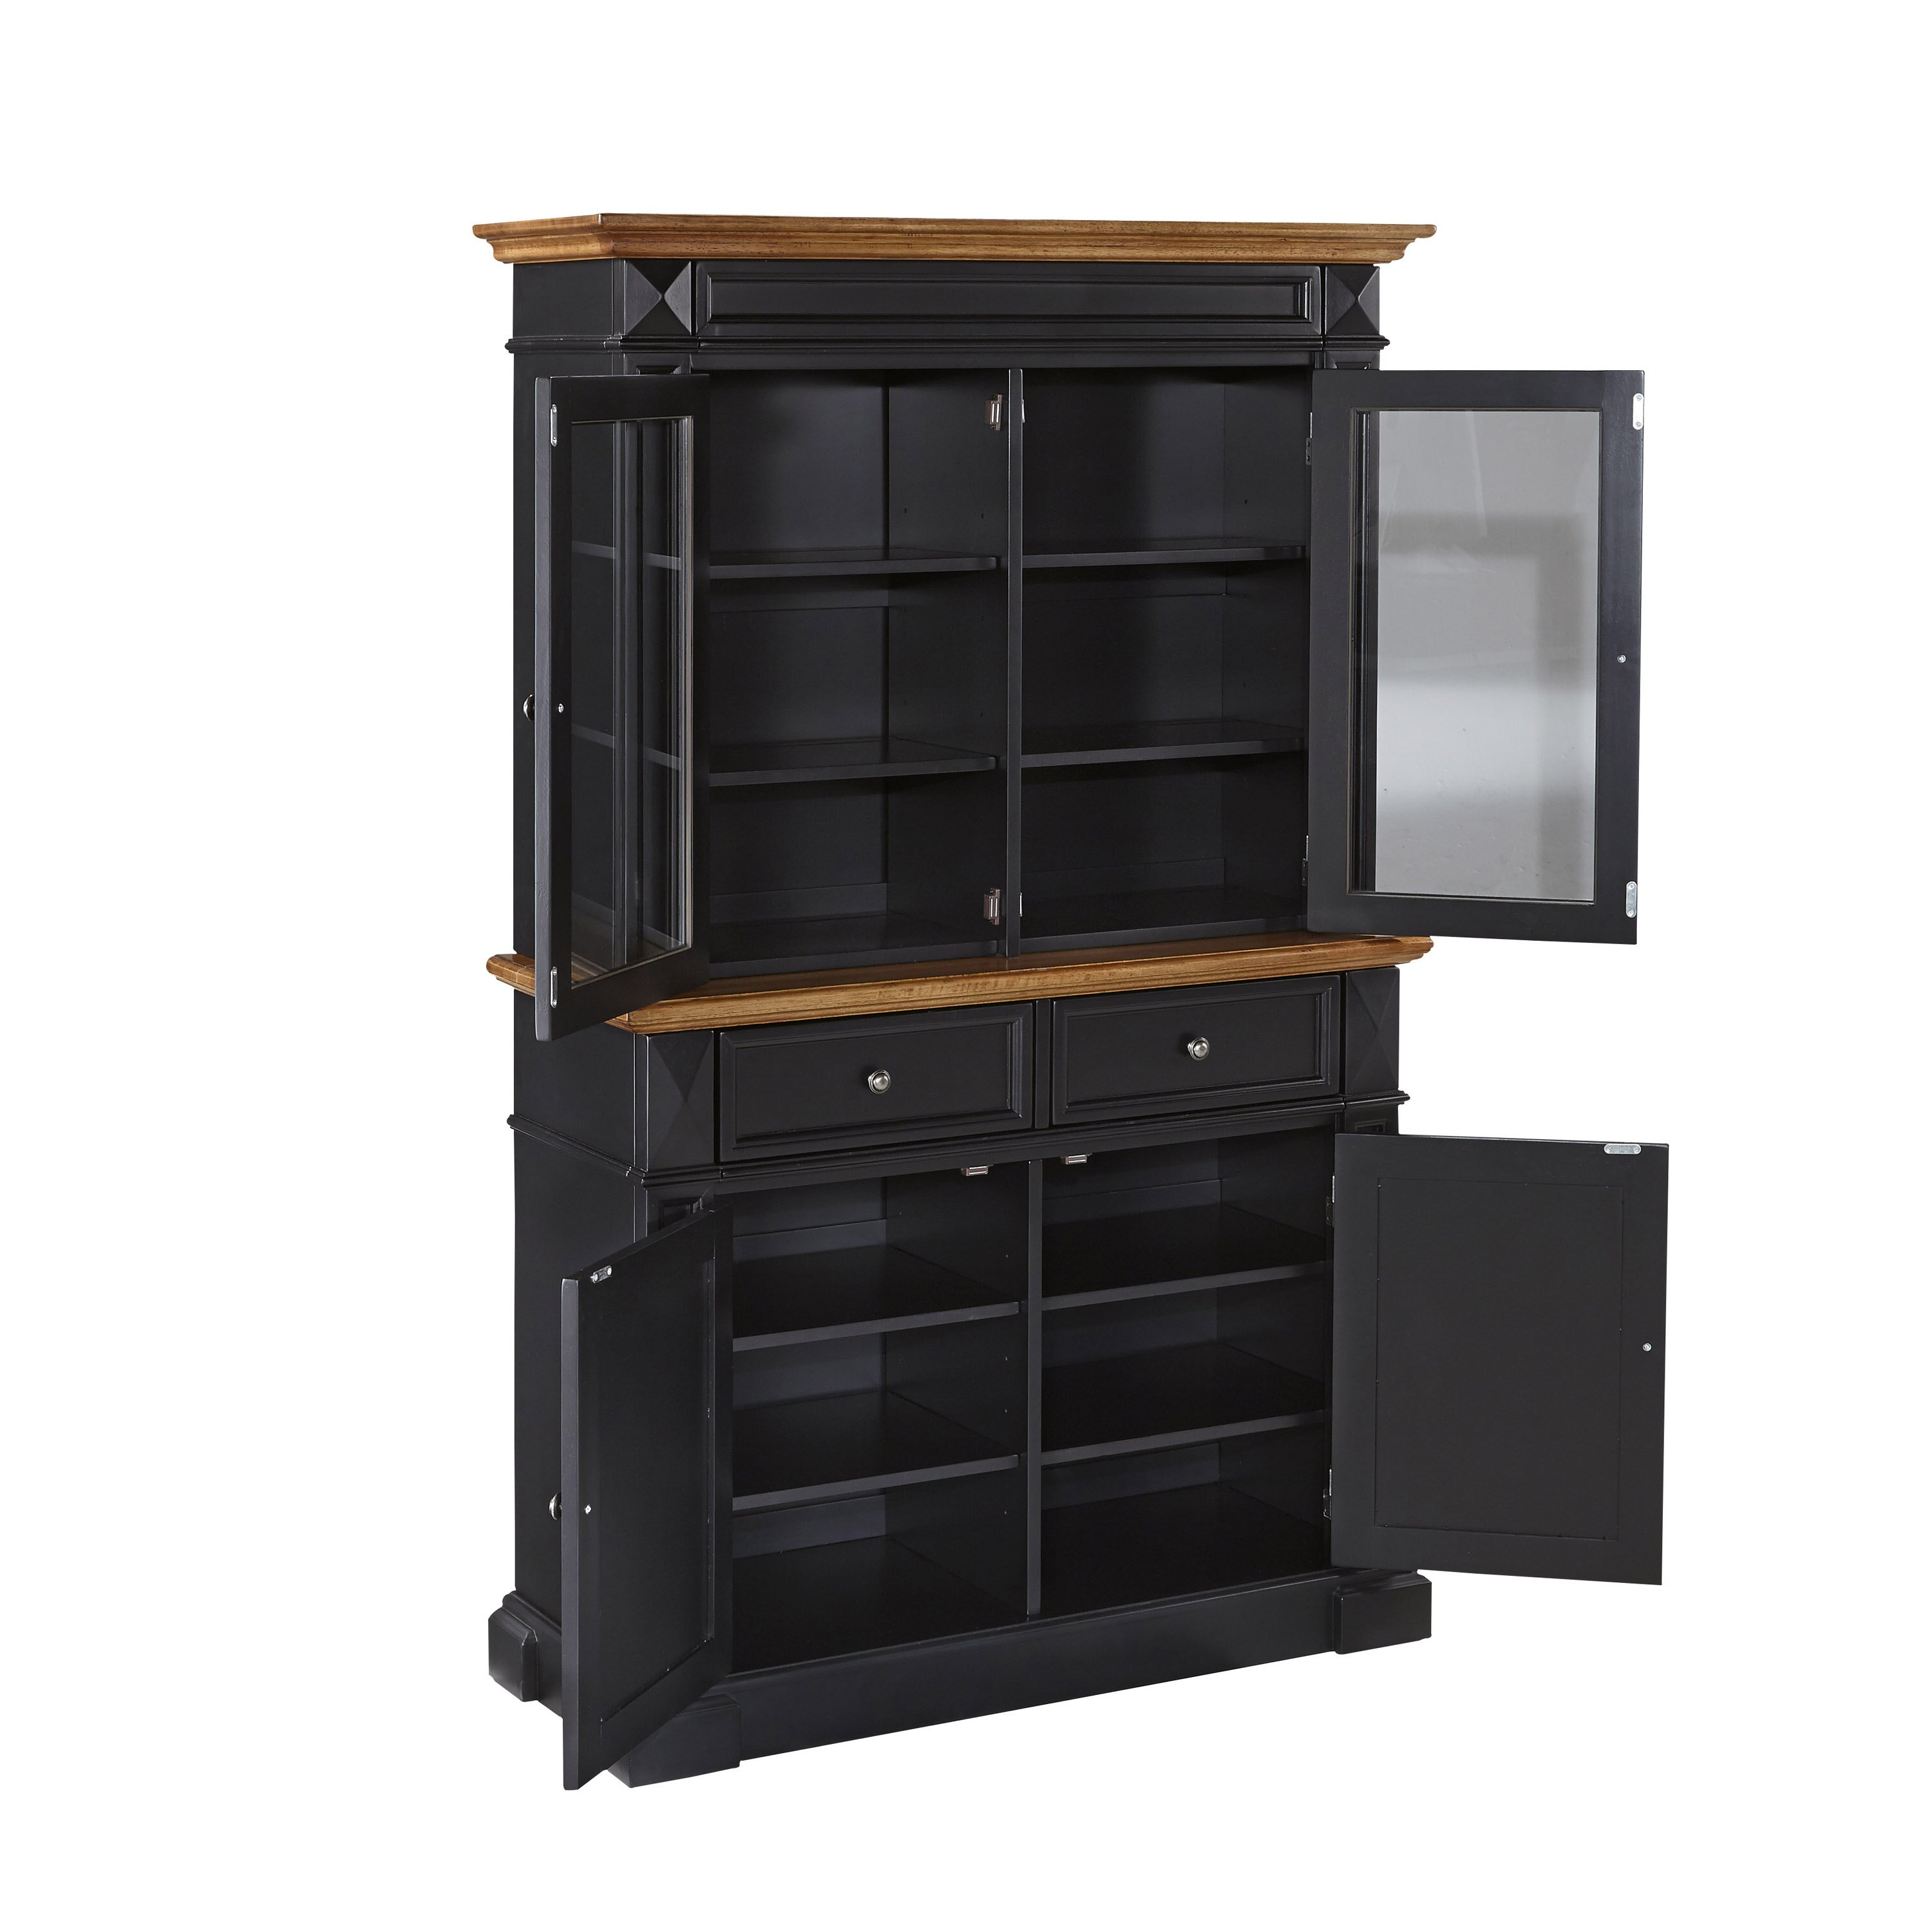 Holiday Kitchen Cabinets Home Styles Americana China Cabinet Amp Reviews Wayfair